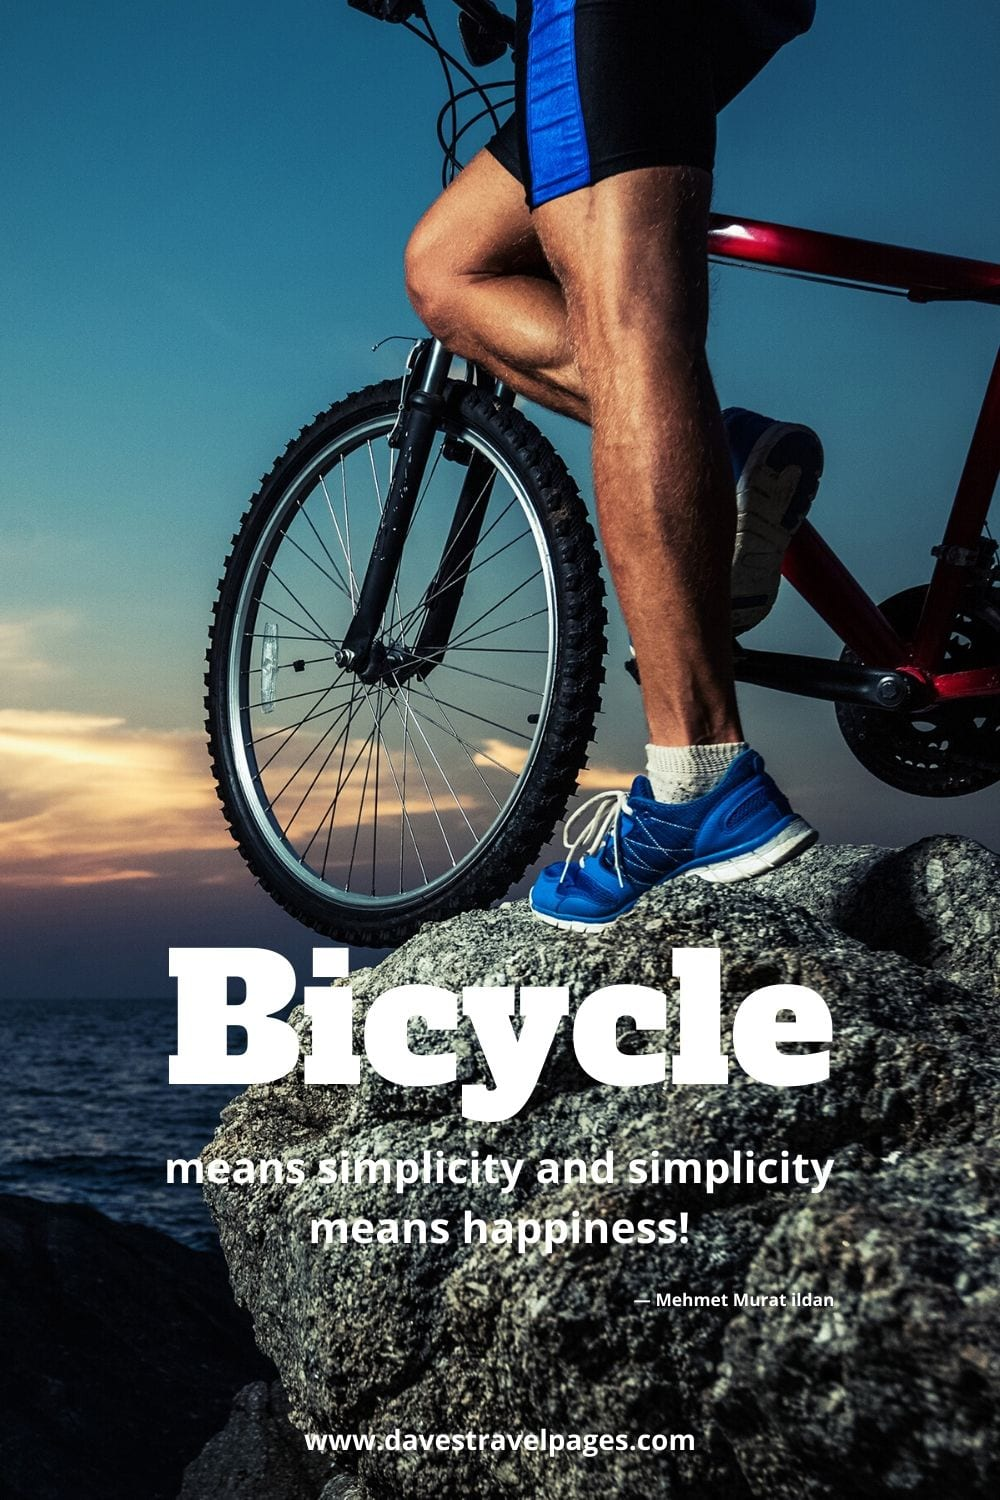 Best quote about bicycles - Bicycle means simplicity and simplicity means happiness!― Mehmet Murat ildan